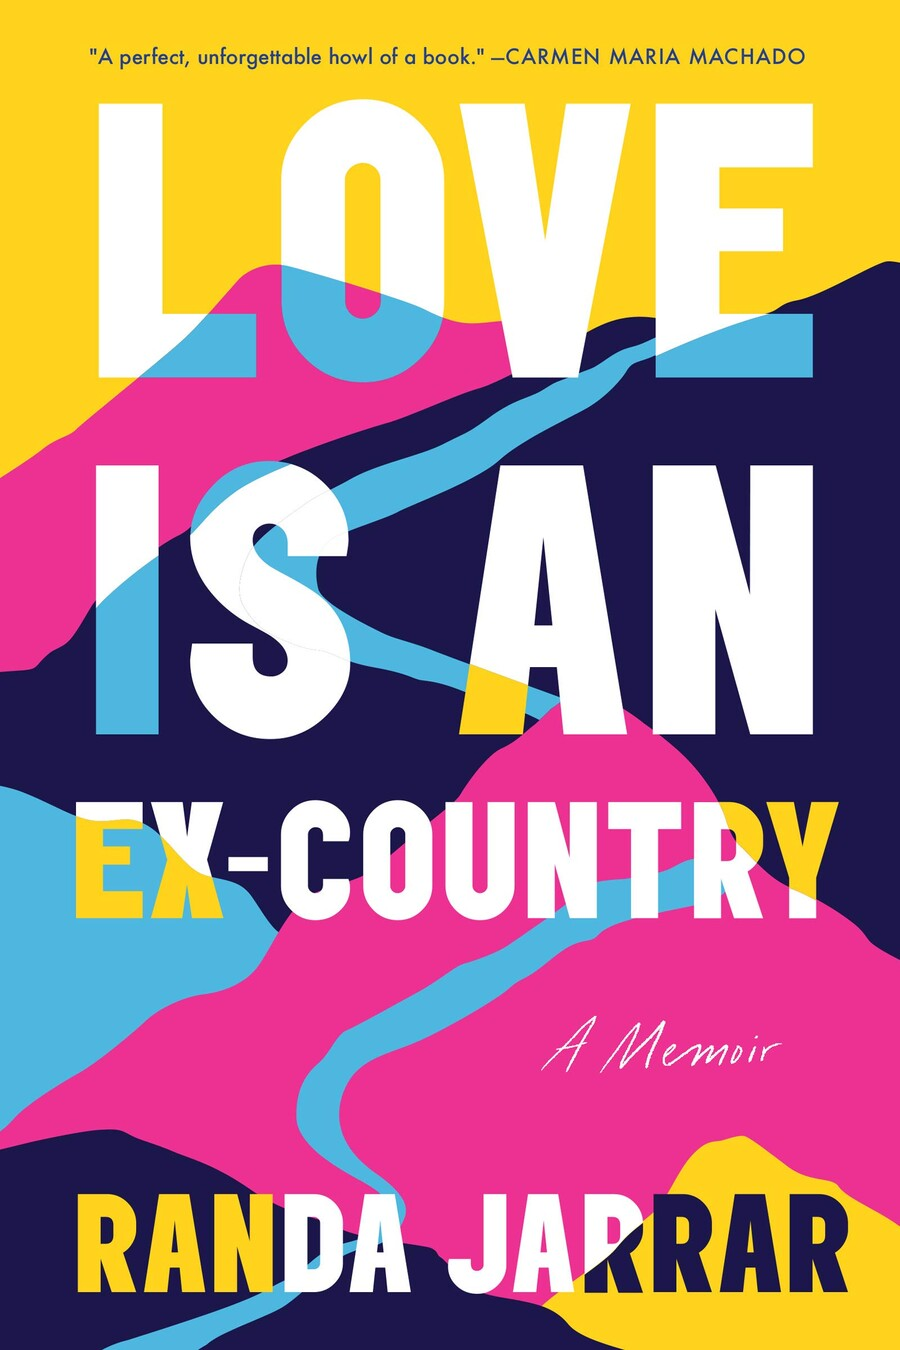 Love Is An Ex-Country is a book cover that features the title transposed over an abstracted colorful landscape of yellow, navy blue, light blue, and pink